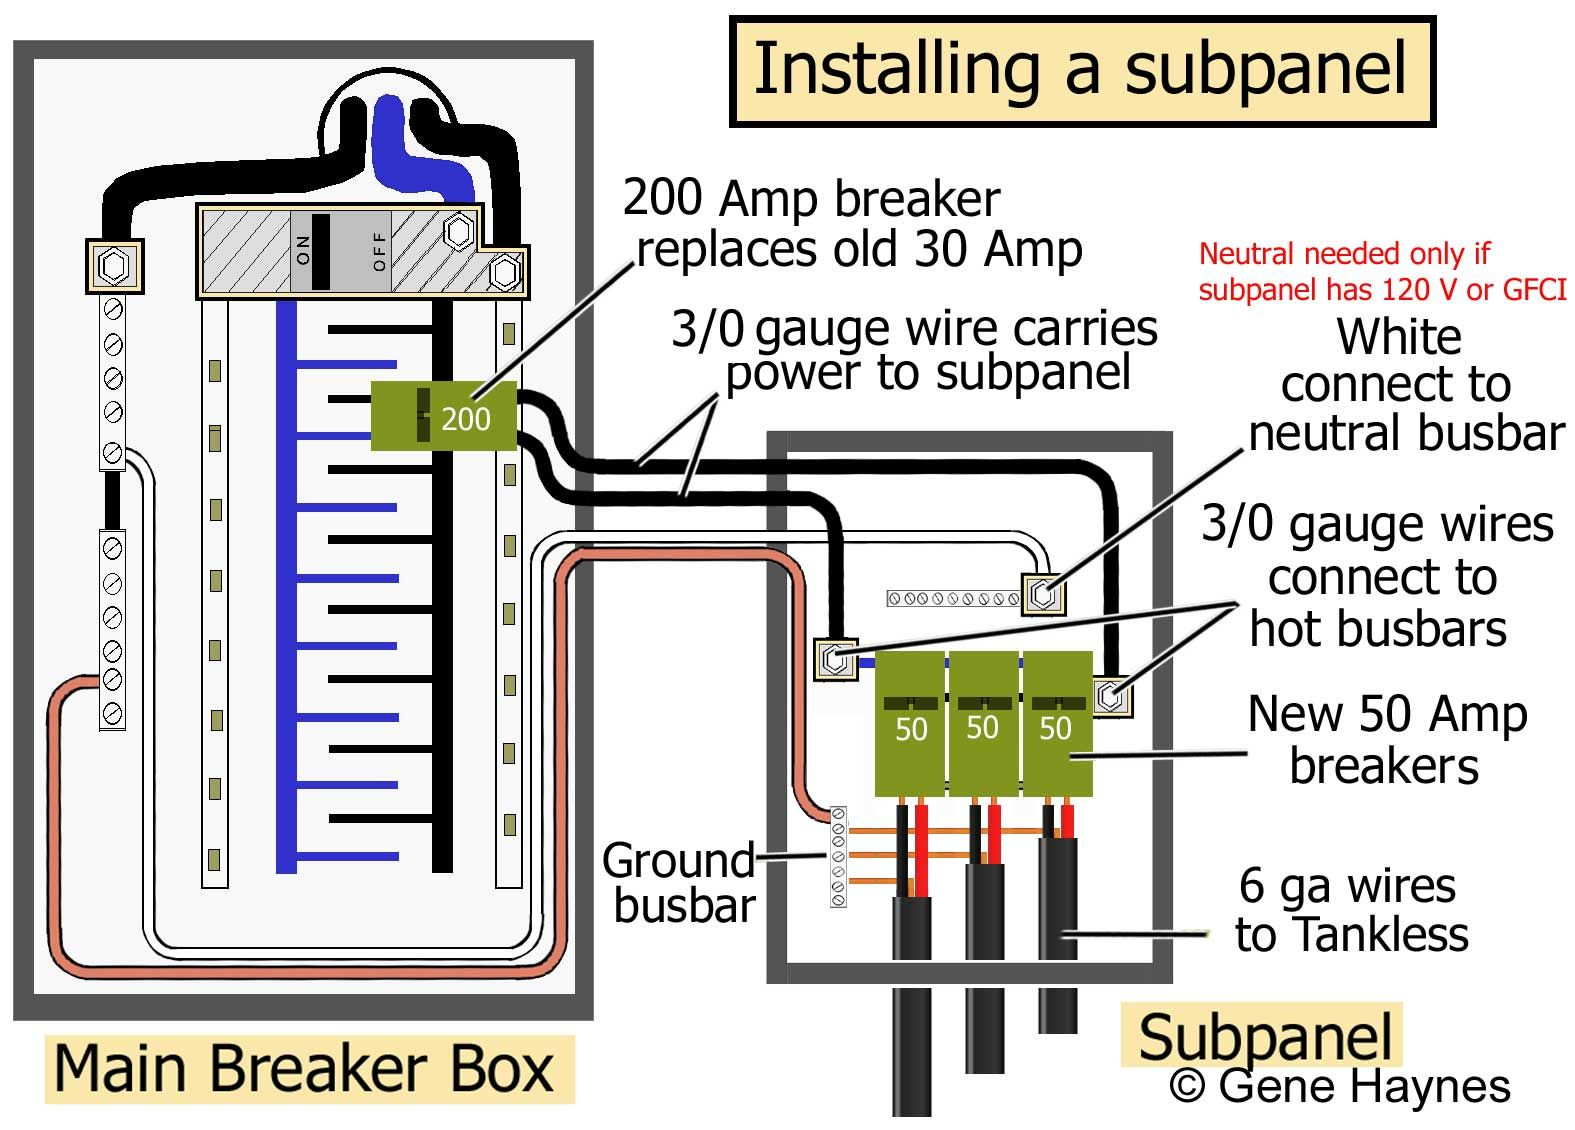 how to install a subpanel how to install main lug, wiring diagramhow to install a subpanel how to install main lug, wiring diagram